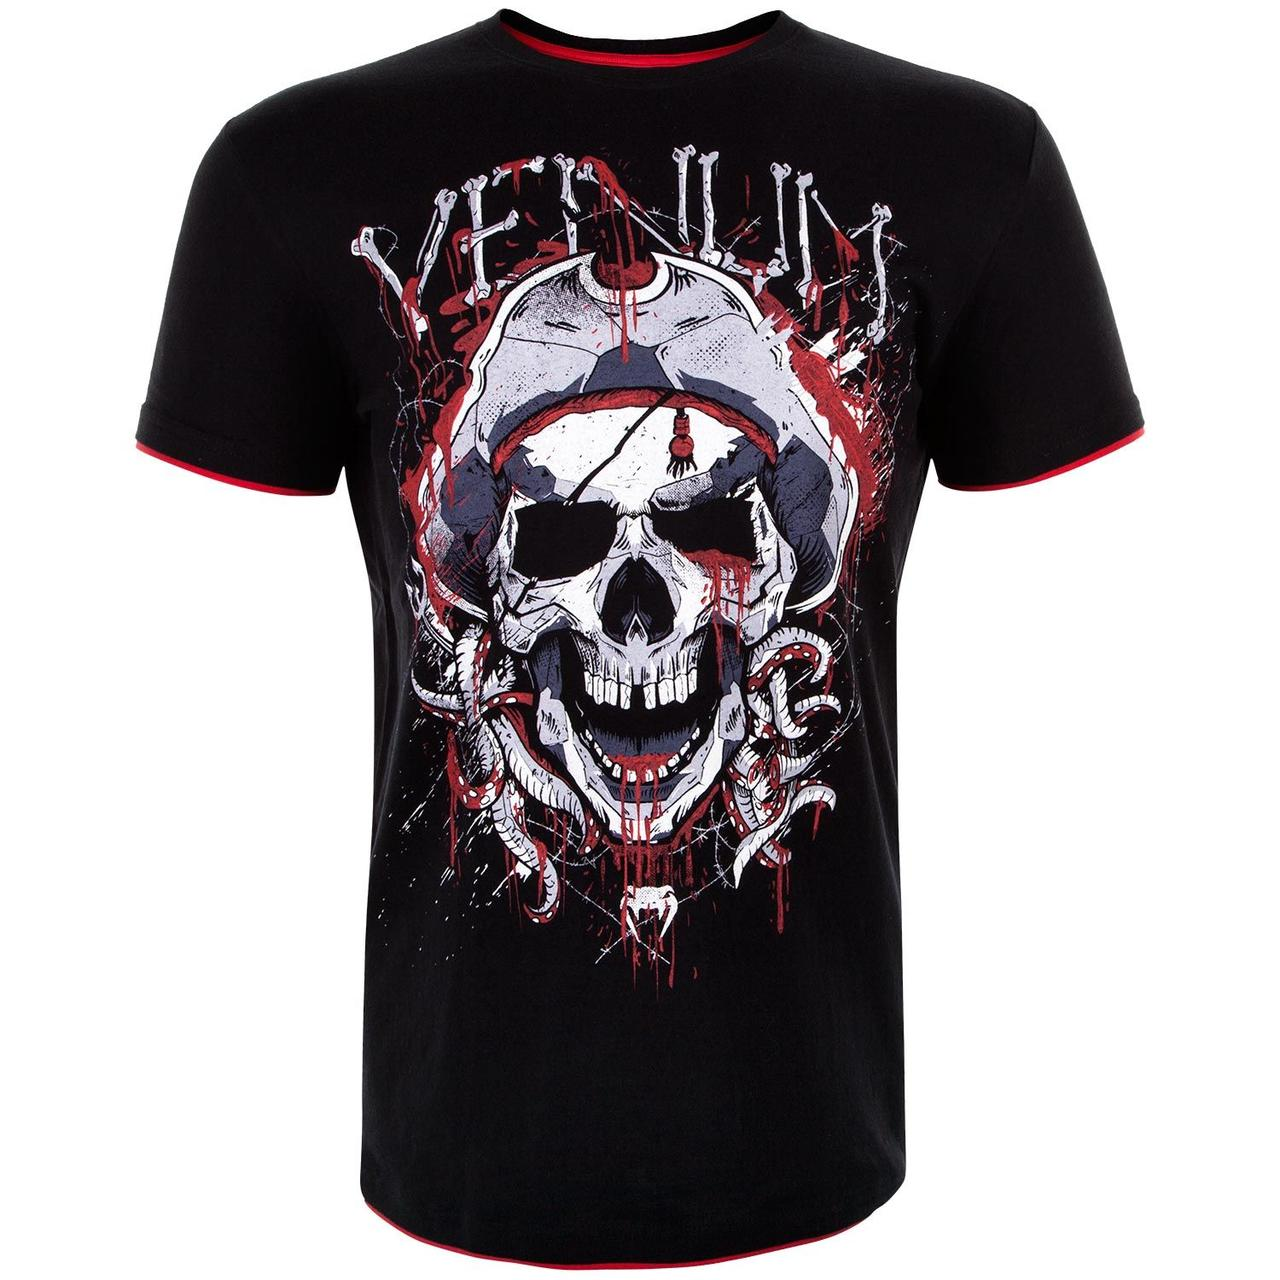 Футболка Venum Pirate 3.0 T-shirt Black Red